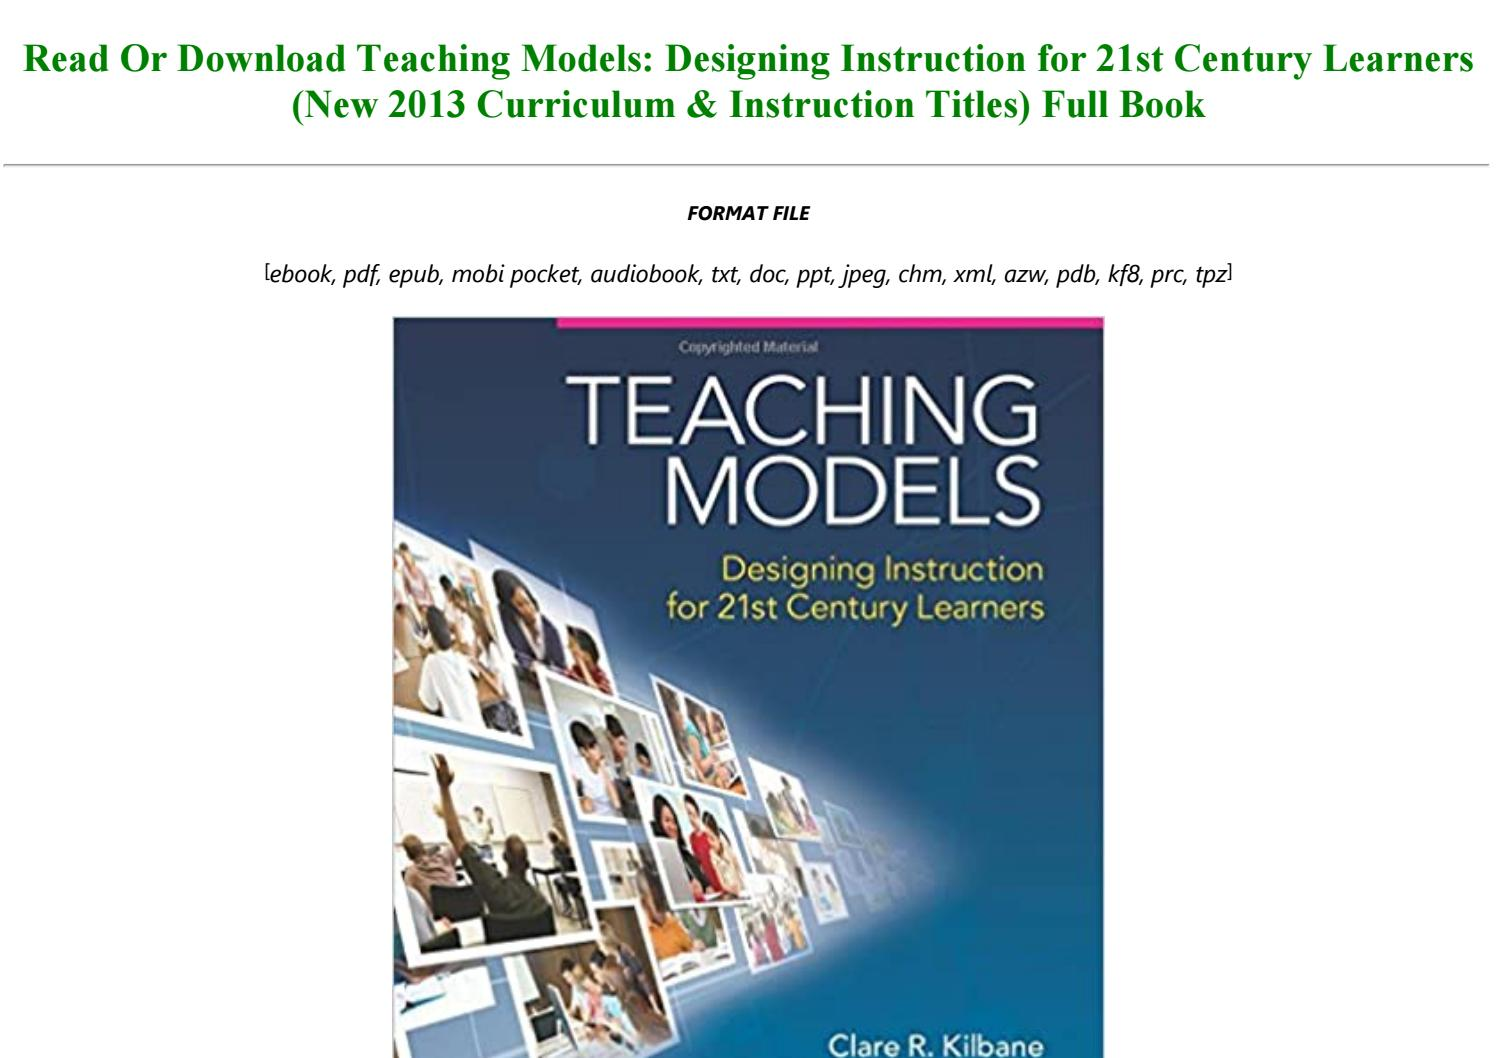 Read Book Teaching Models Designing Instruction For 21st Century Learners New 2013 Curriculum By Jordan123259 Issuu